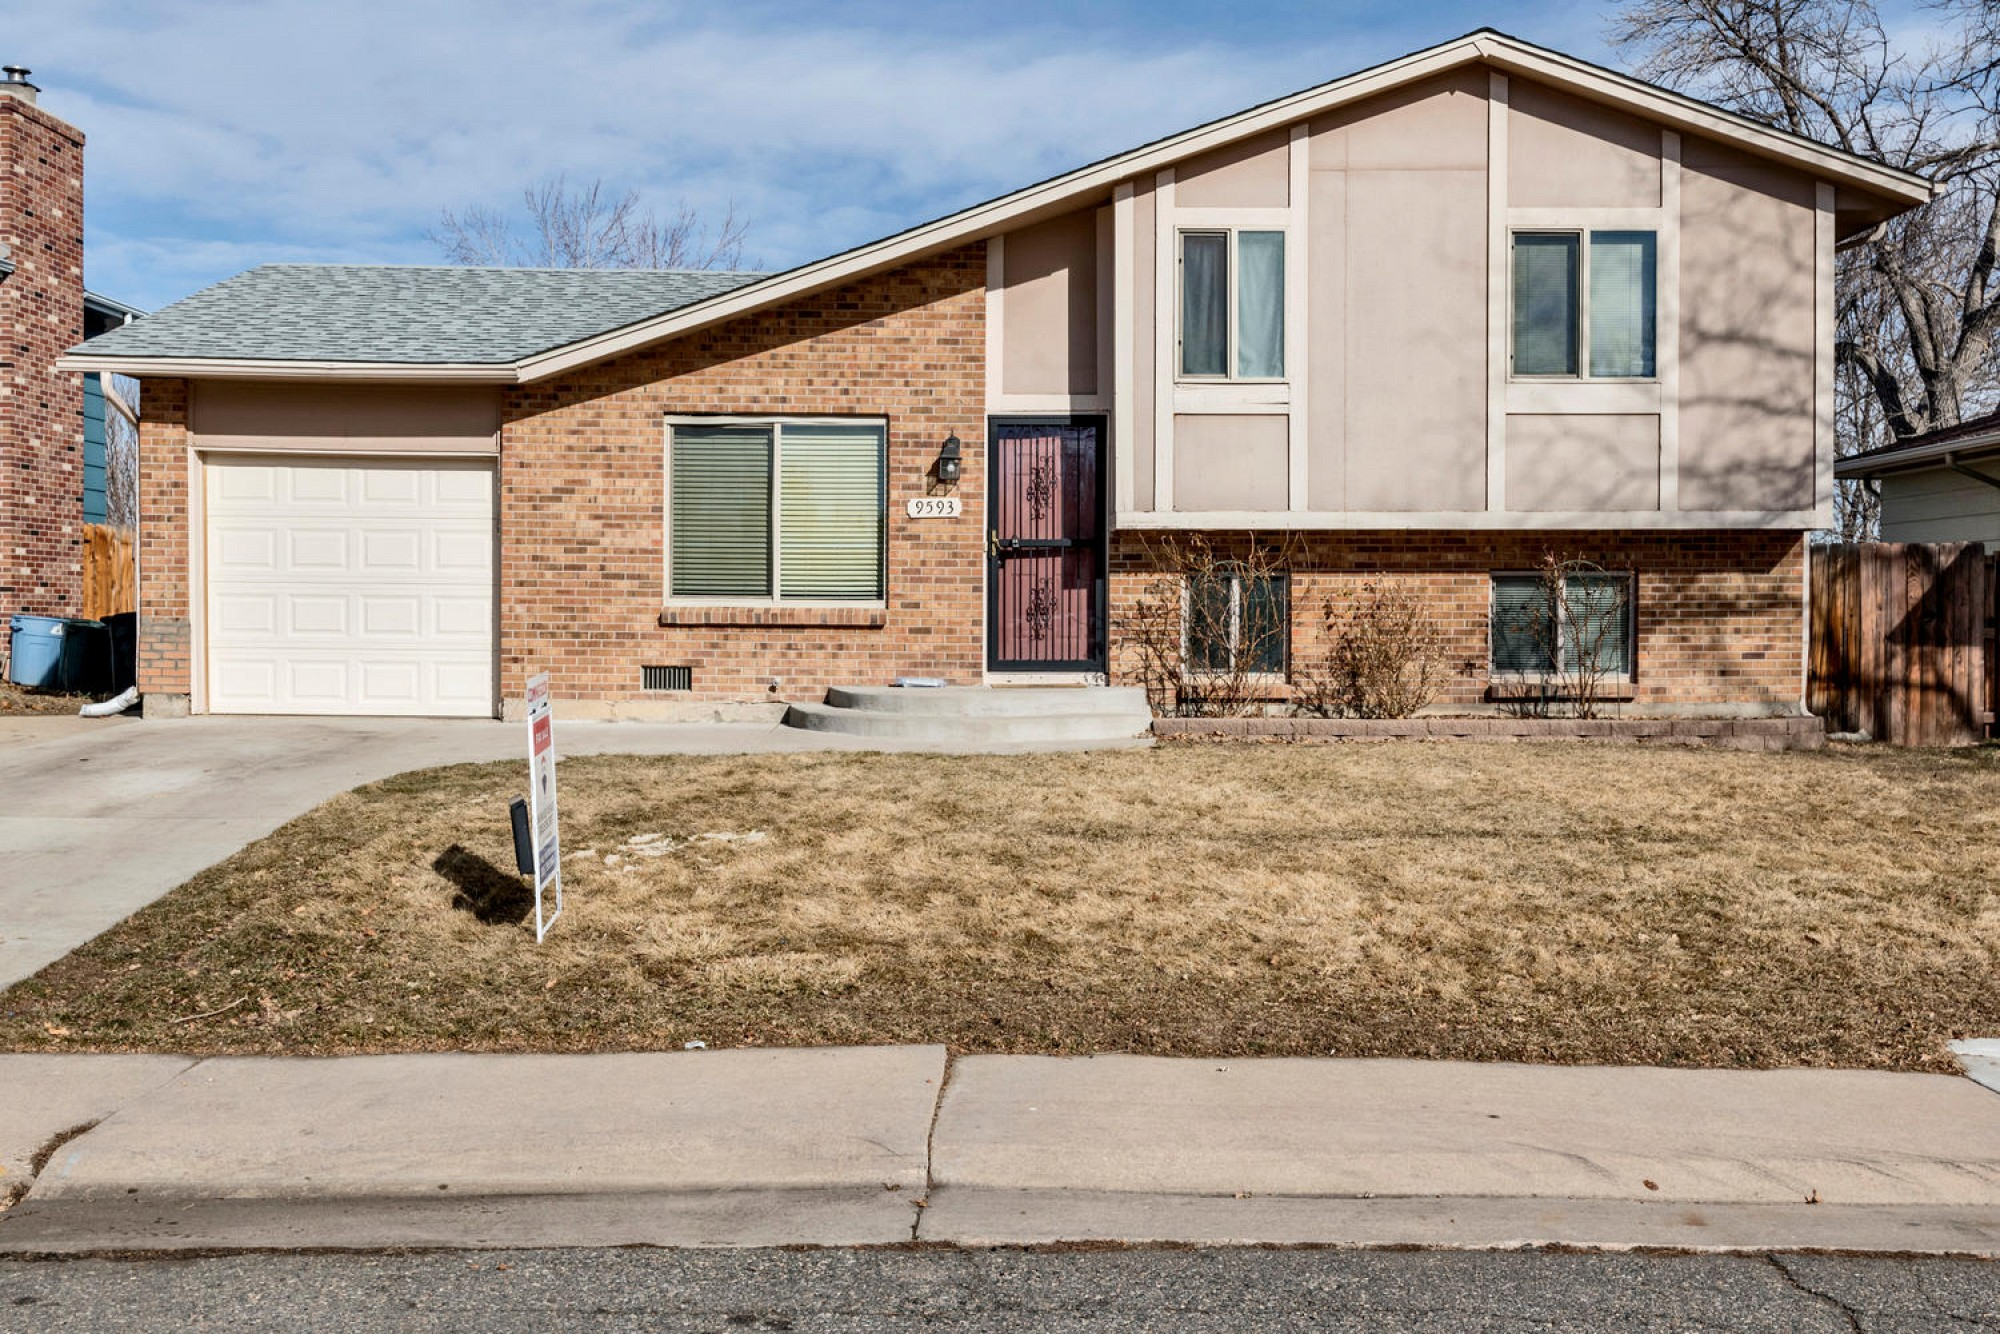 9593 W. Tufts Avenue, Littleton, CO 80123